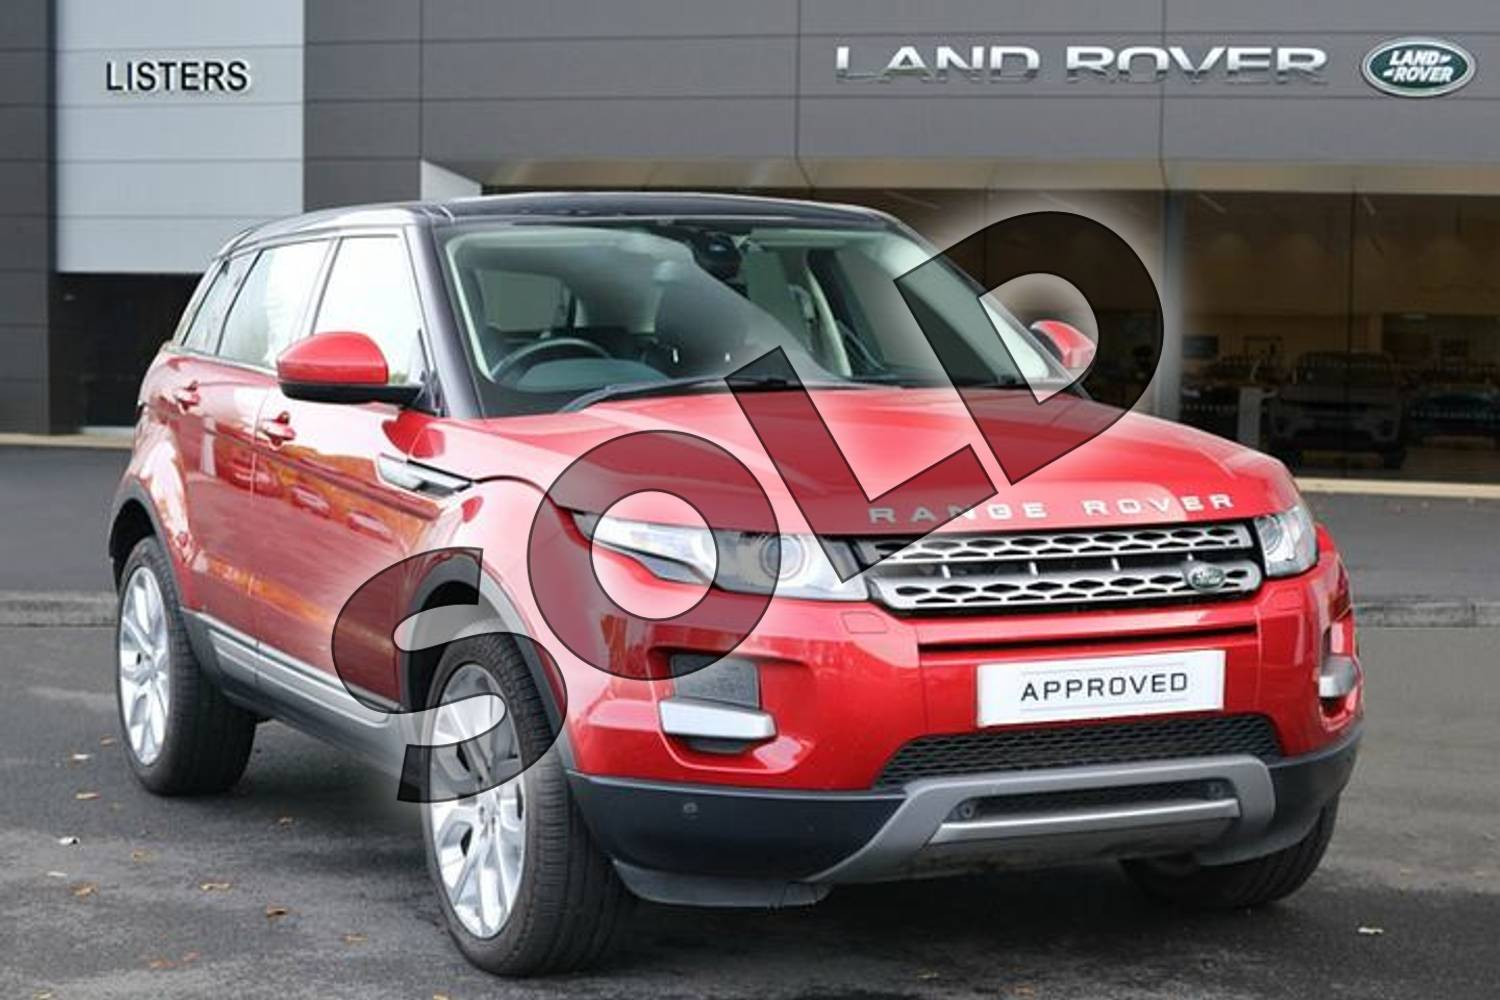 2015 Range Rover Evoque Diesel Hatchback Diesel 2.2 SD4 Pure 5dr (Tech Pack) in Firenze Red at Listers Land Rover Hereford